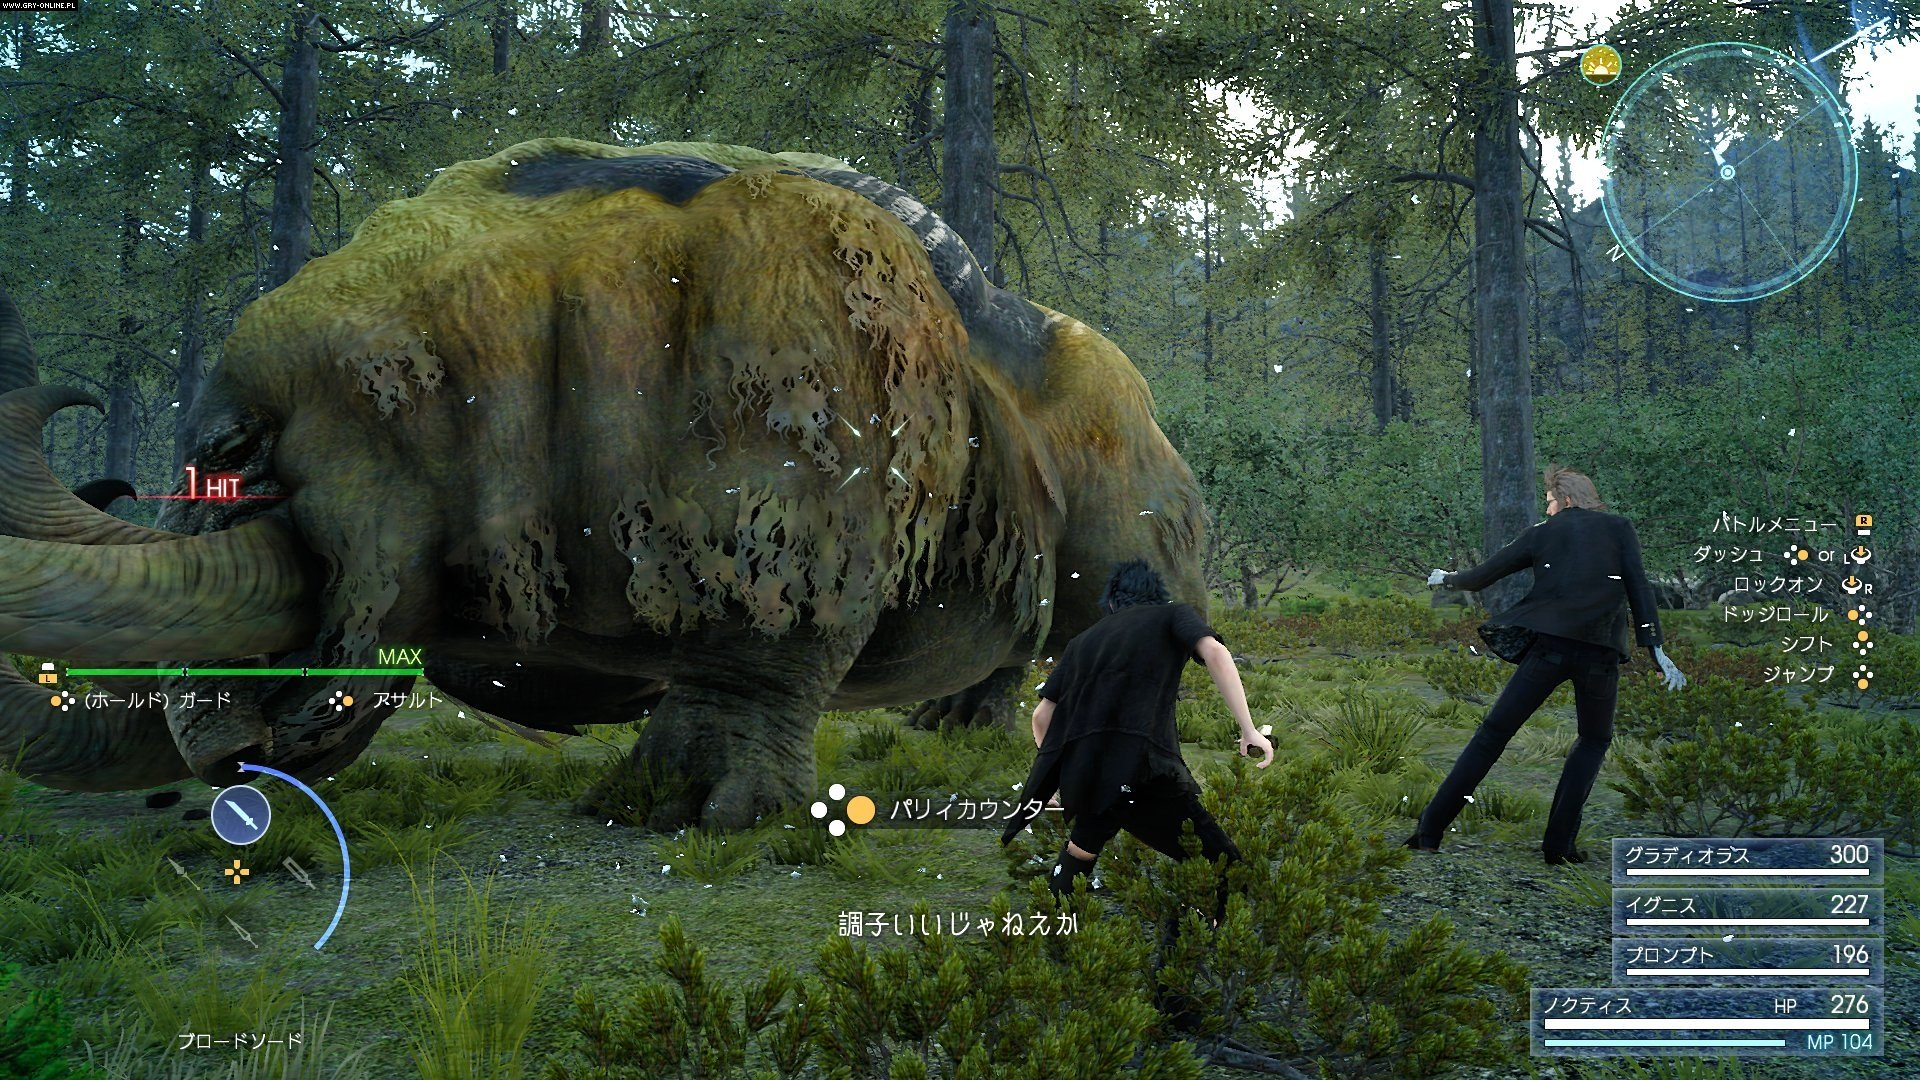 Final Fantasy XV PS4, XONE Gry Screen 222/393, Square-Enix / Eidos